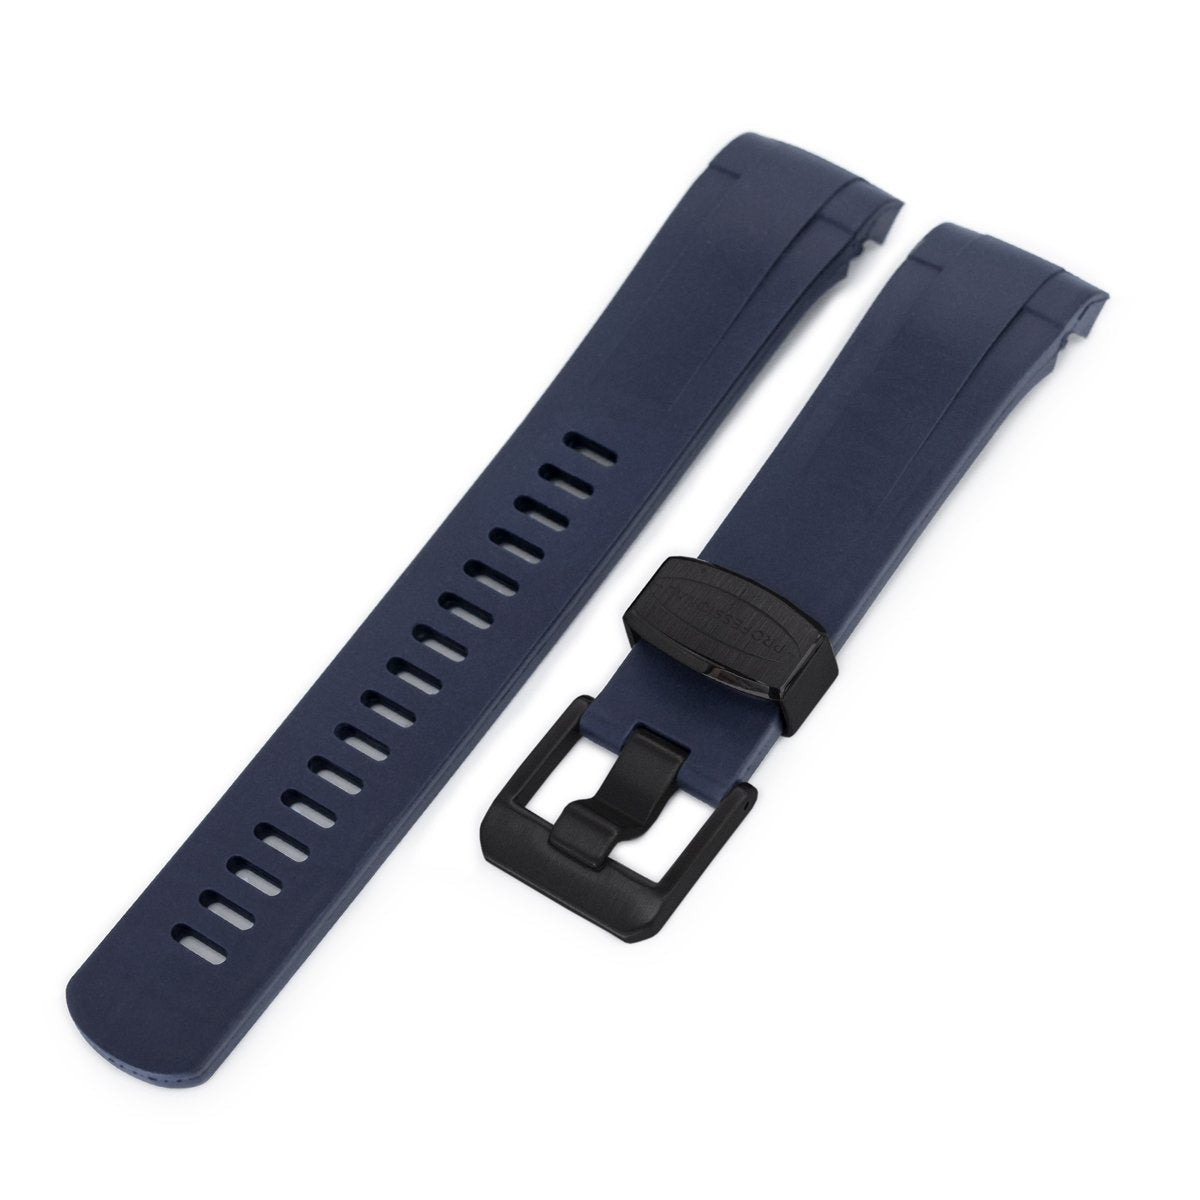 22mm Crafter Blue Dark Blue Rubber Curved Lug Watch Strap for TUD BB M79230 PVD Black Buckle Strapcode Watch Bands